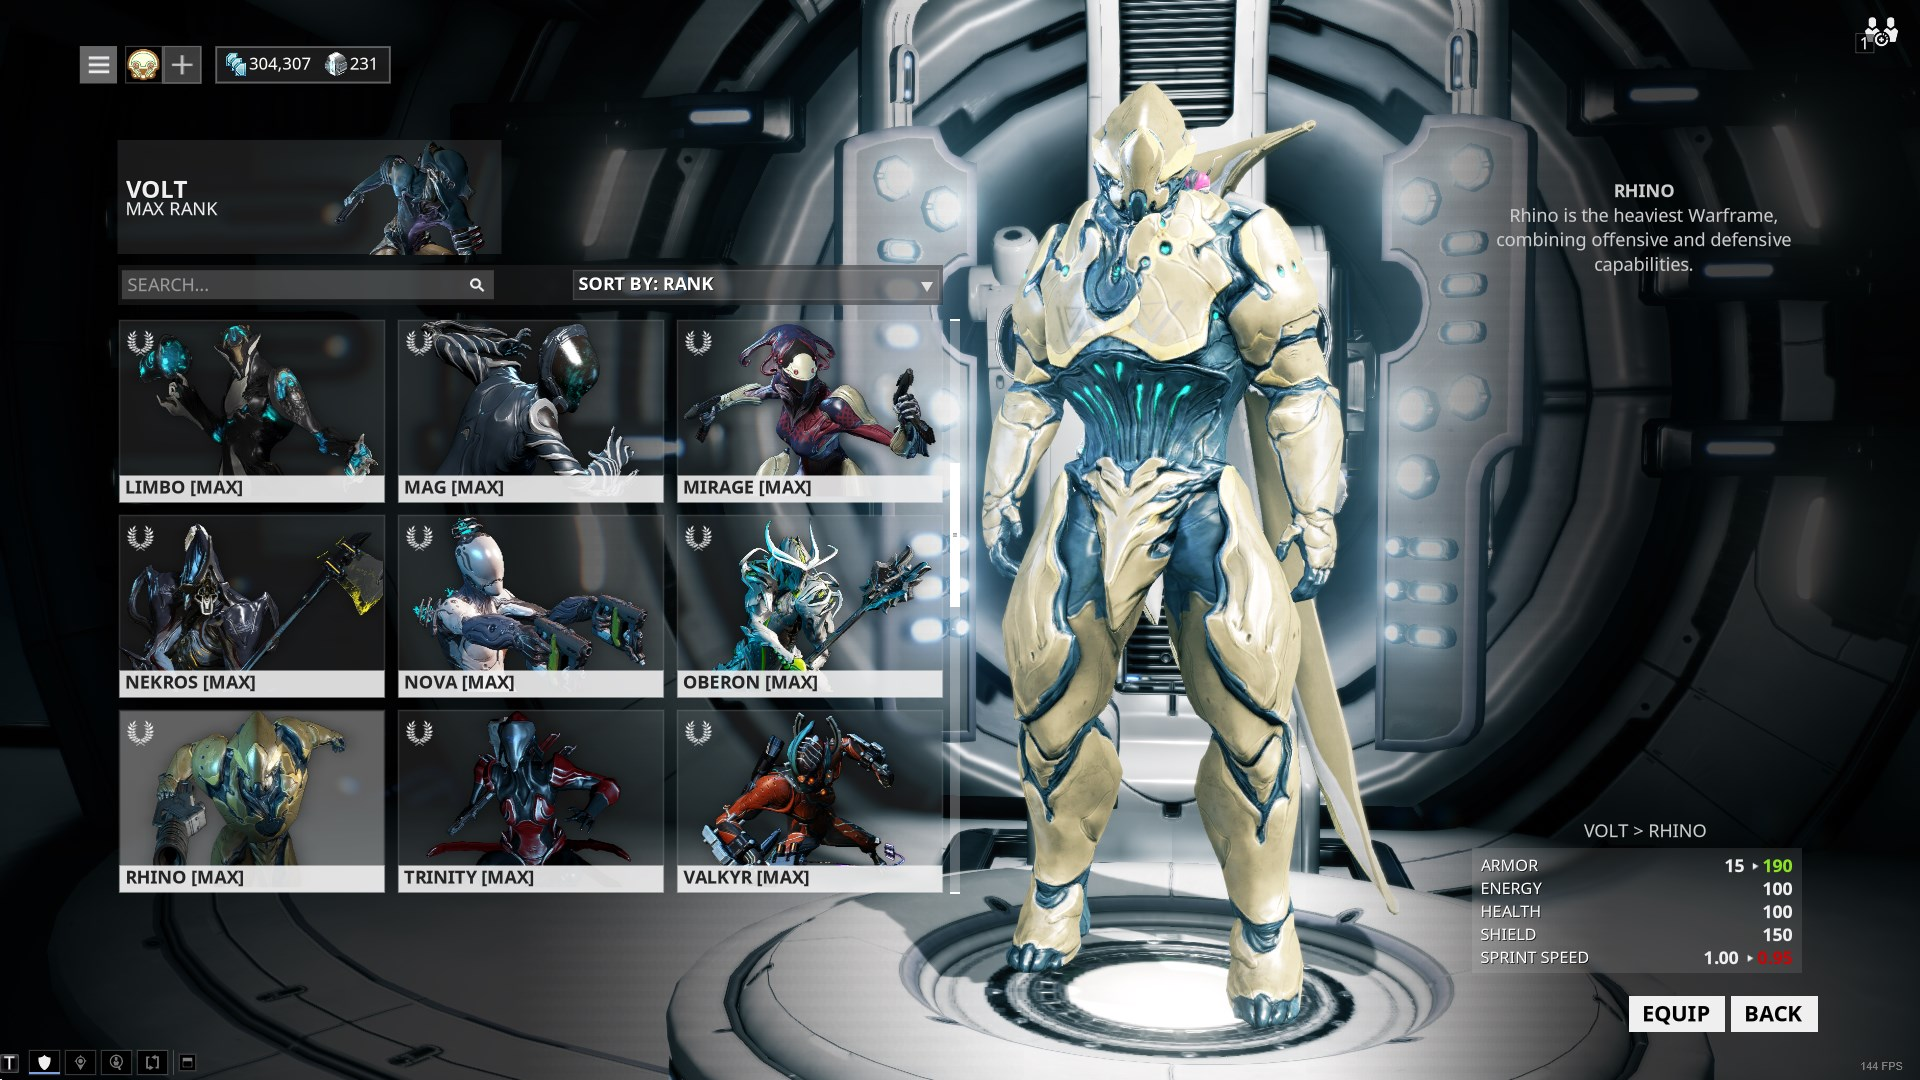 Warframe frames and mods: purchase warframes, equipping mods